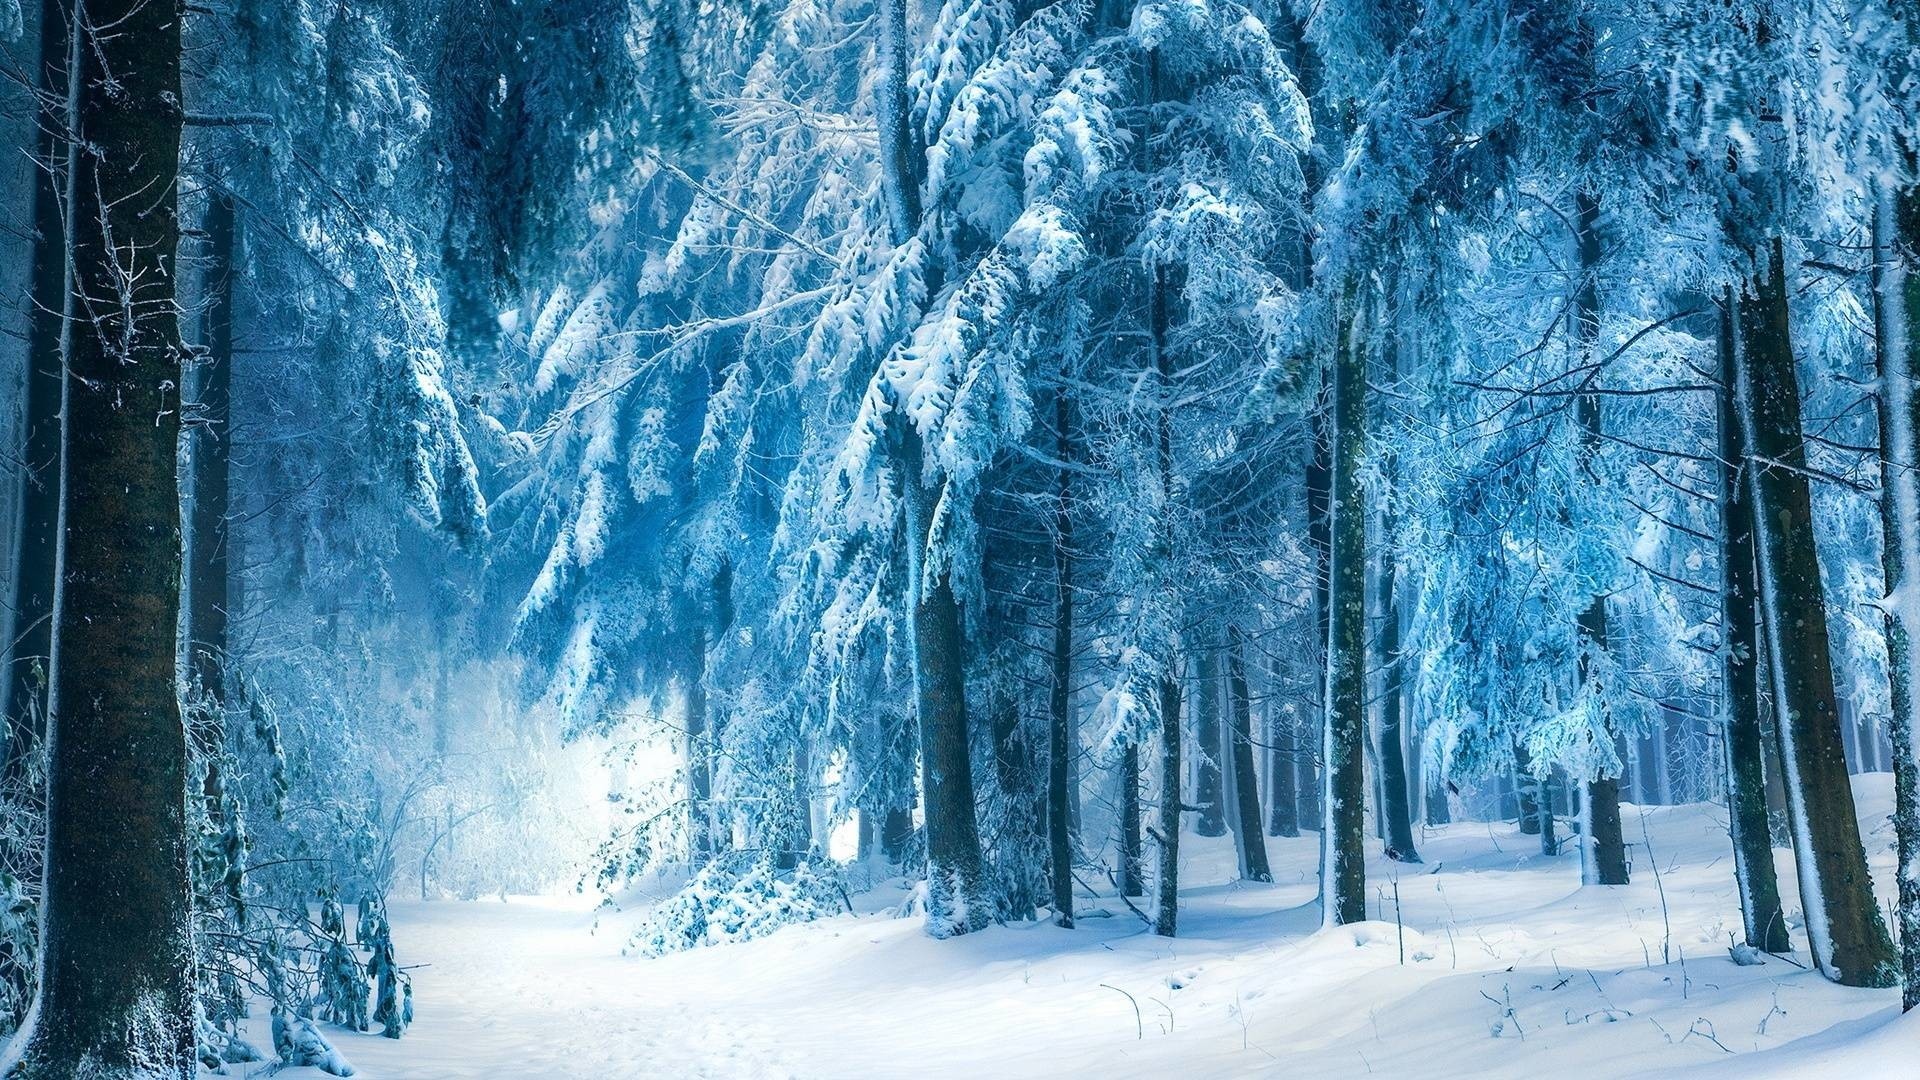 Snow forest wallpaper 61 images - Snowy wallpaper ...